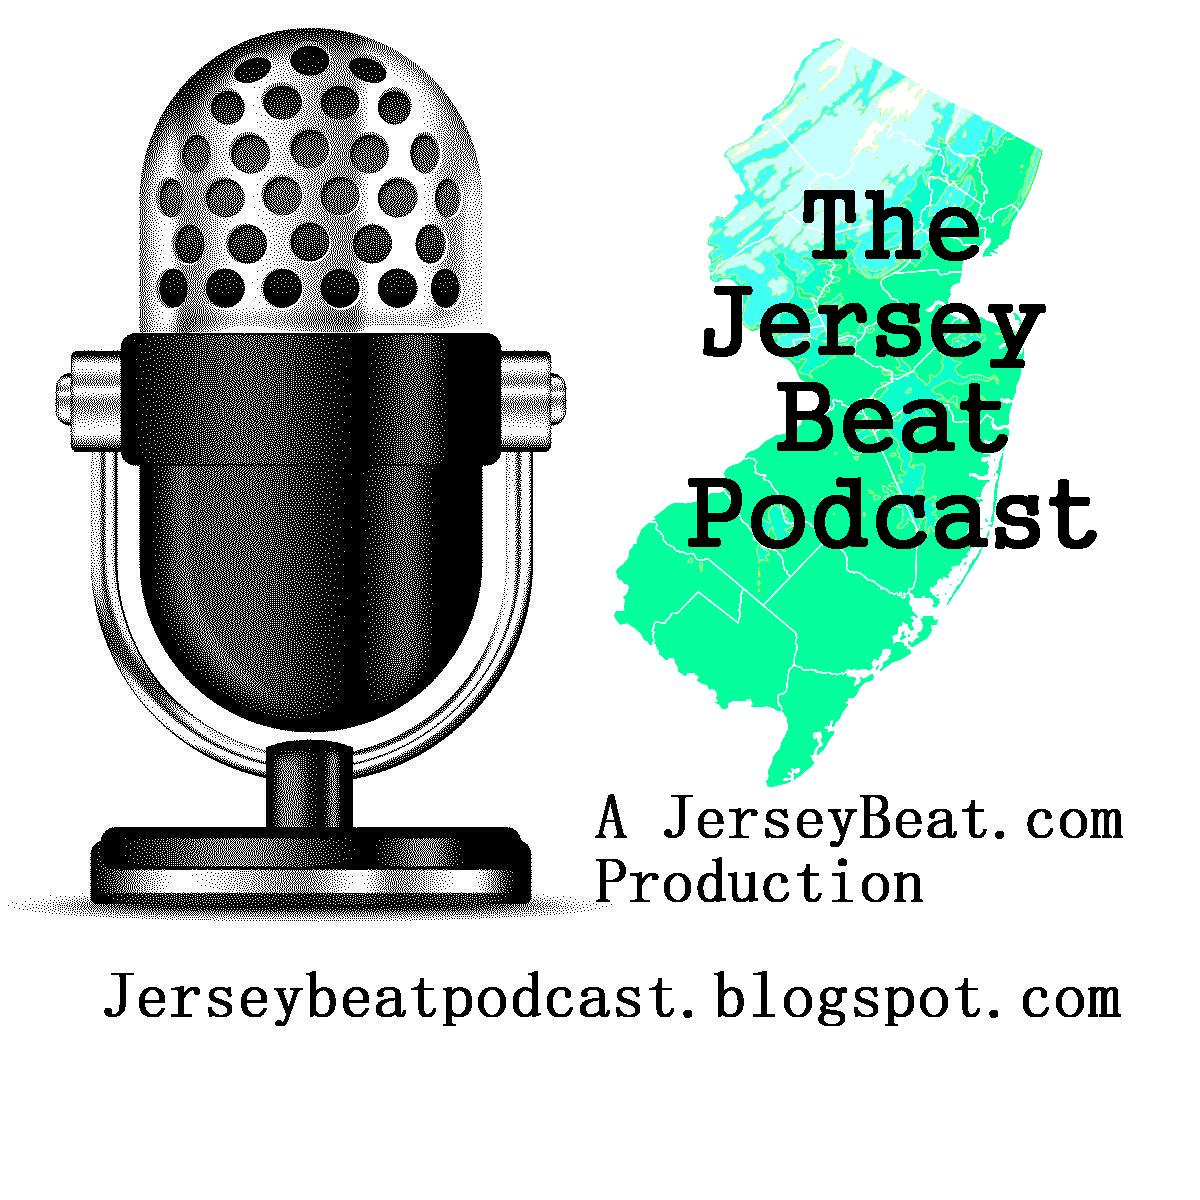 the jersey beat podcast